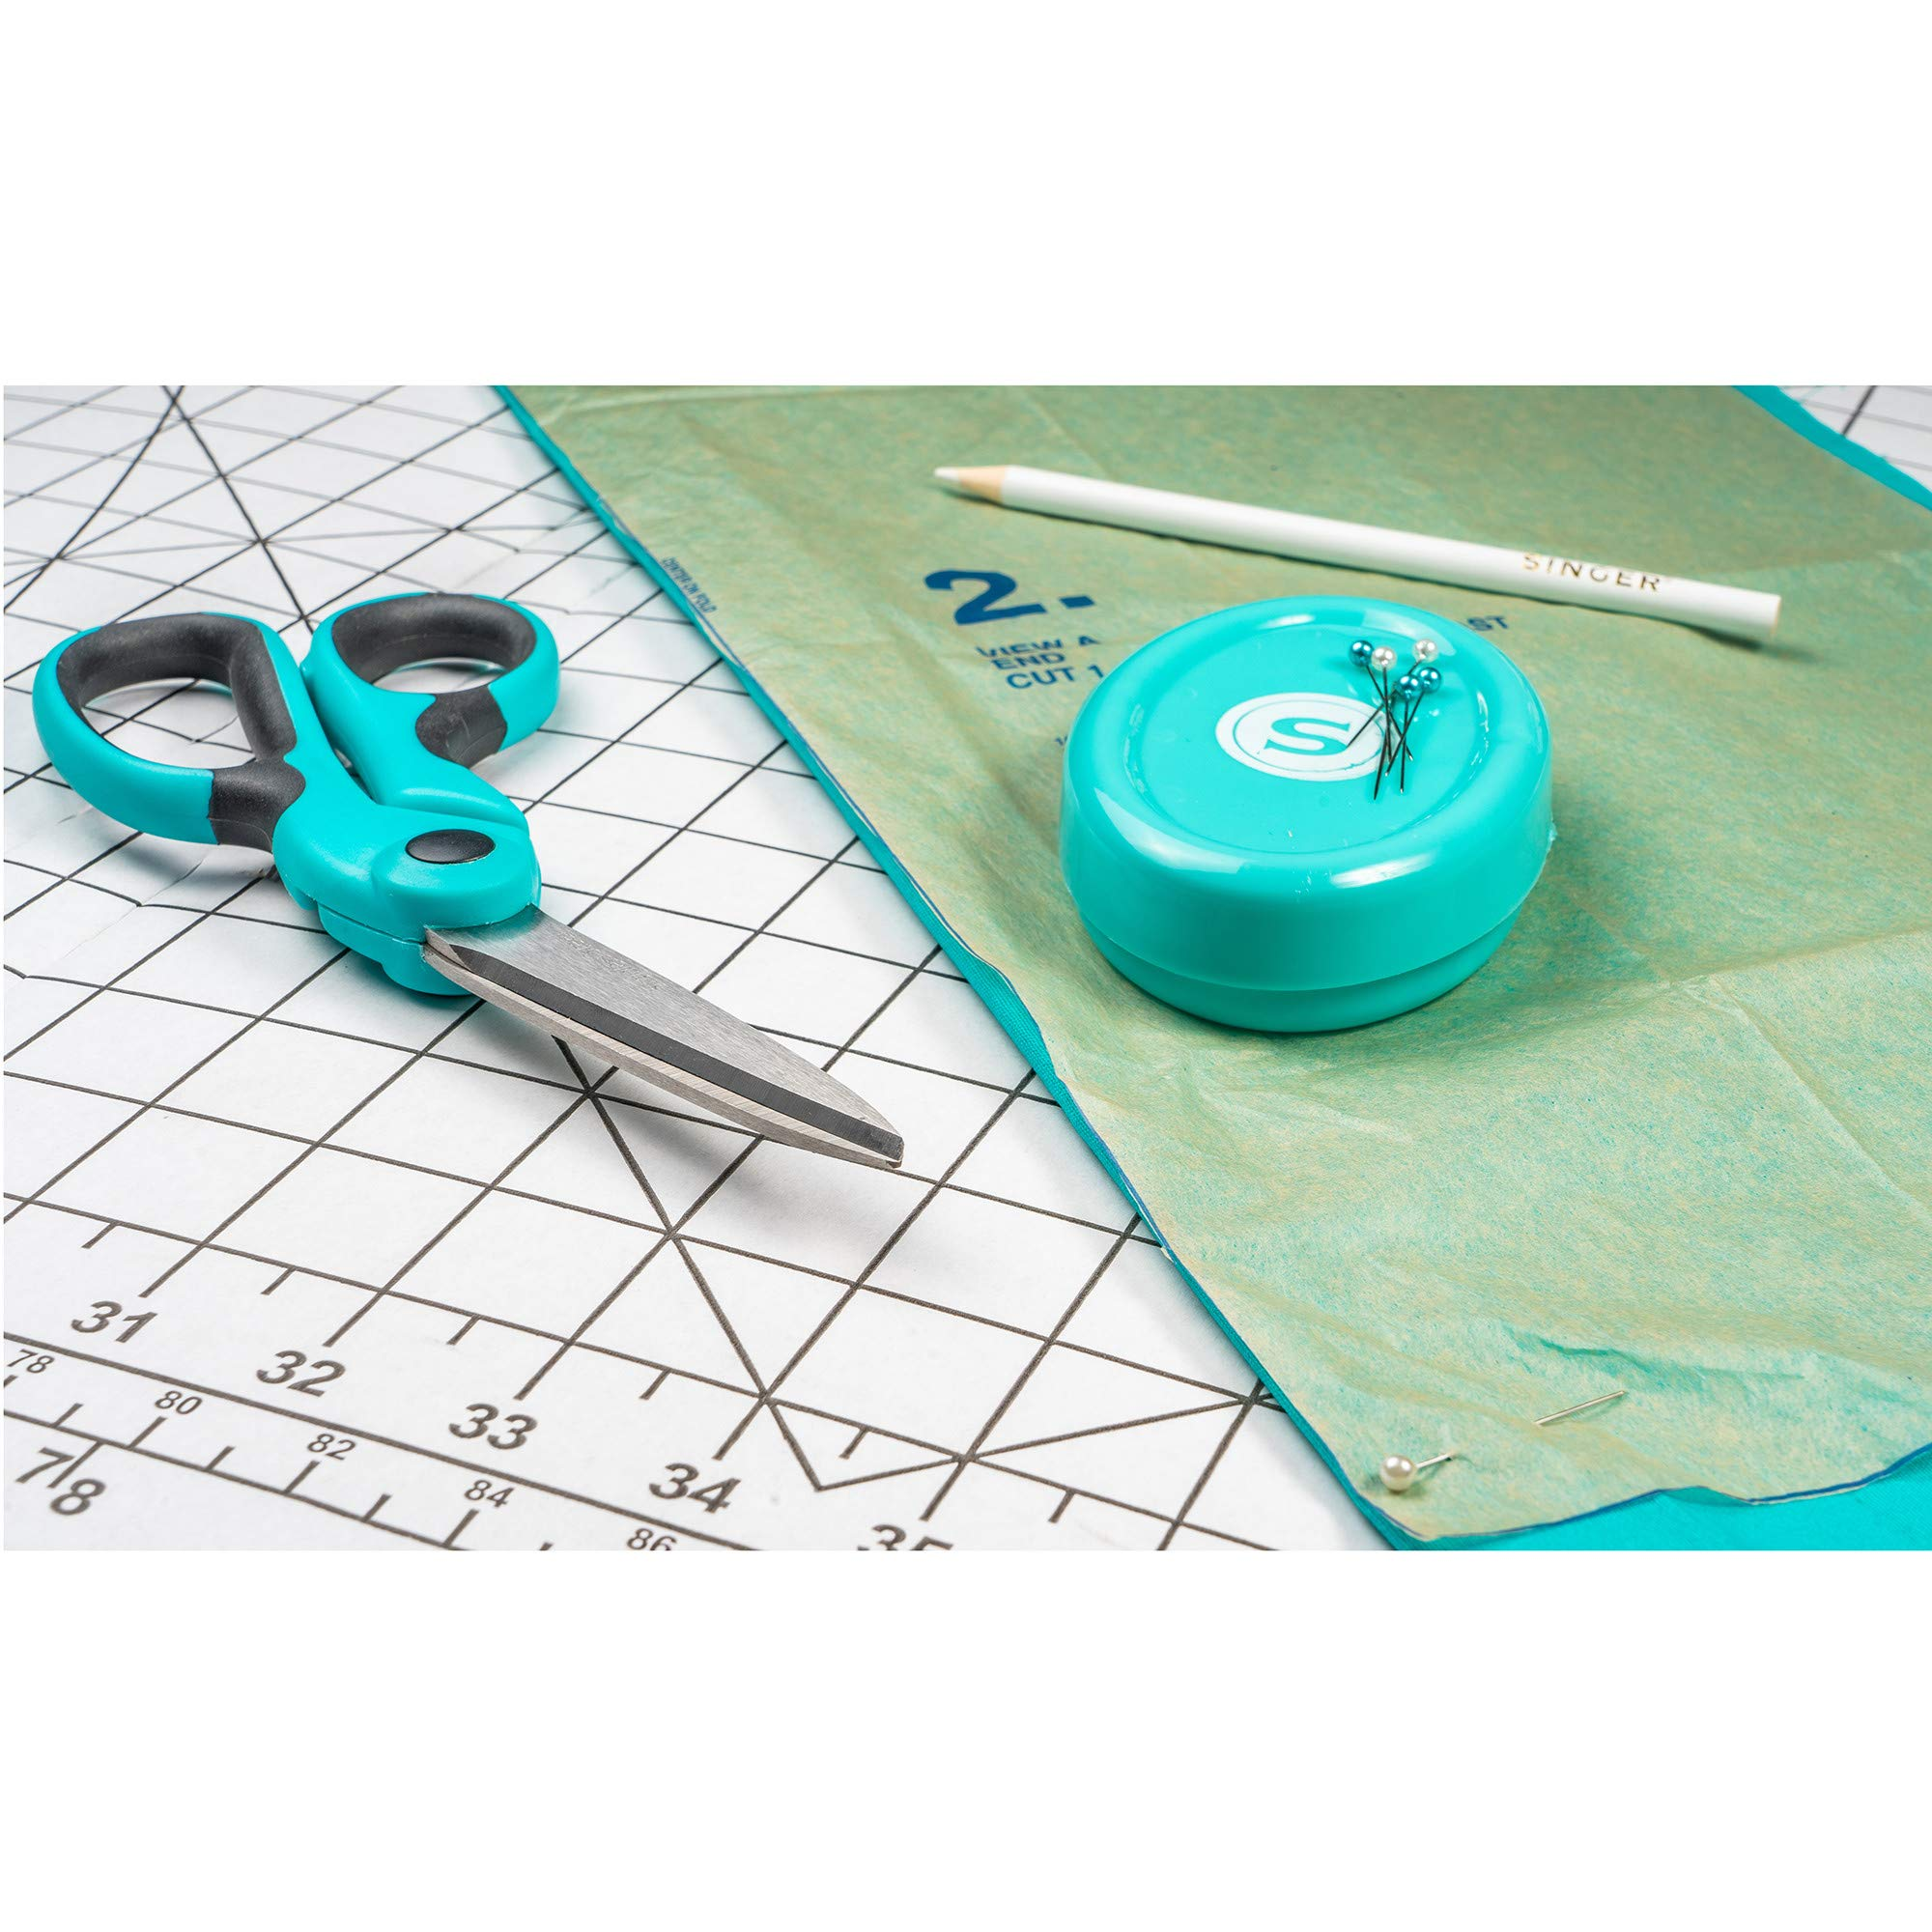 SINGER 00561 8-1/2-Inch ProSeries Heavy Duty Bent Sewing Scissors by SINGER